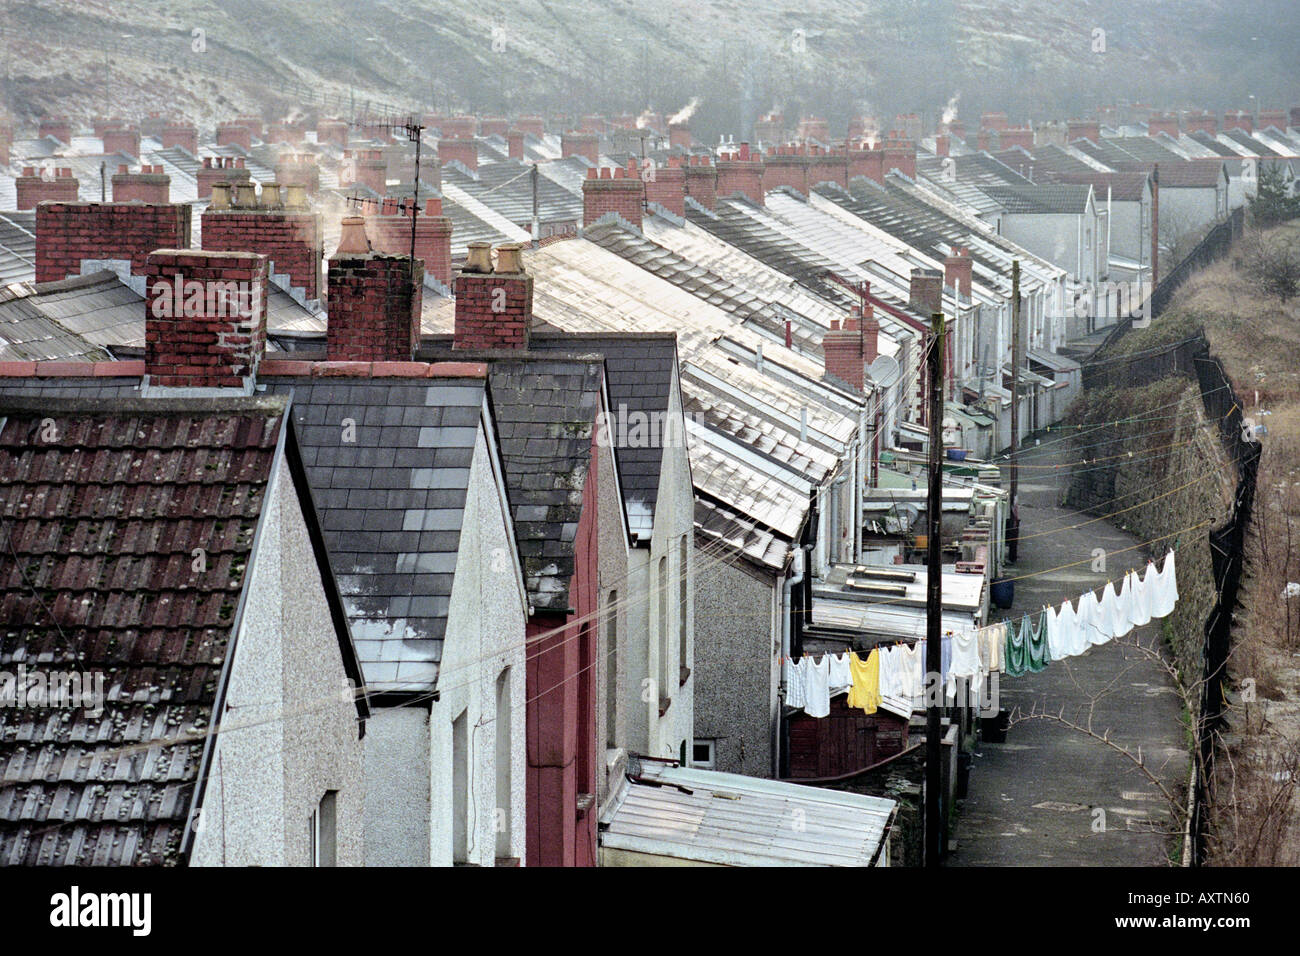 Former mining village of Llanhilleth South Wales UK GB on a cold frosty winters day with washing drying on the clothes line - Stock Image